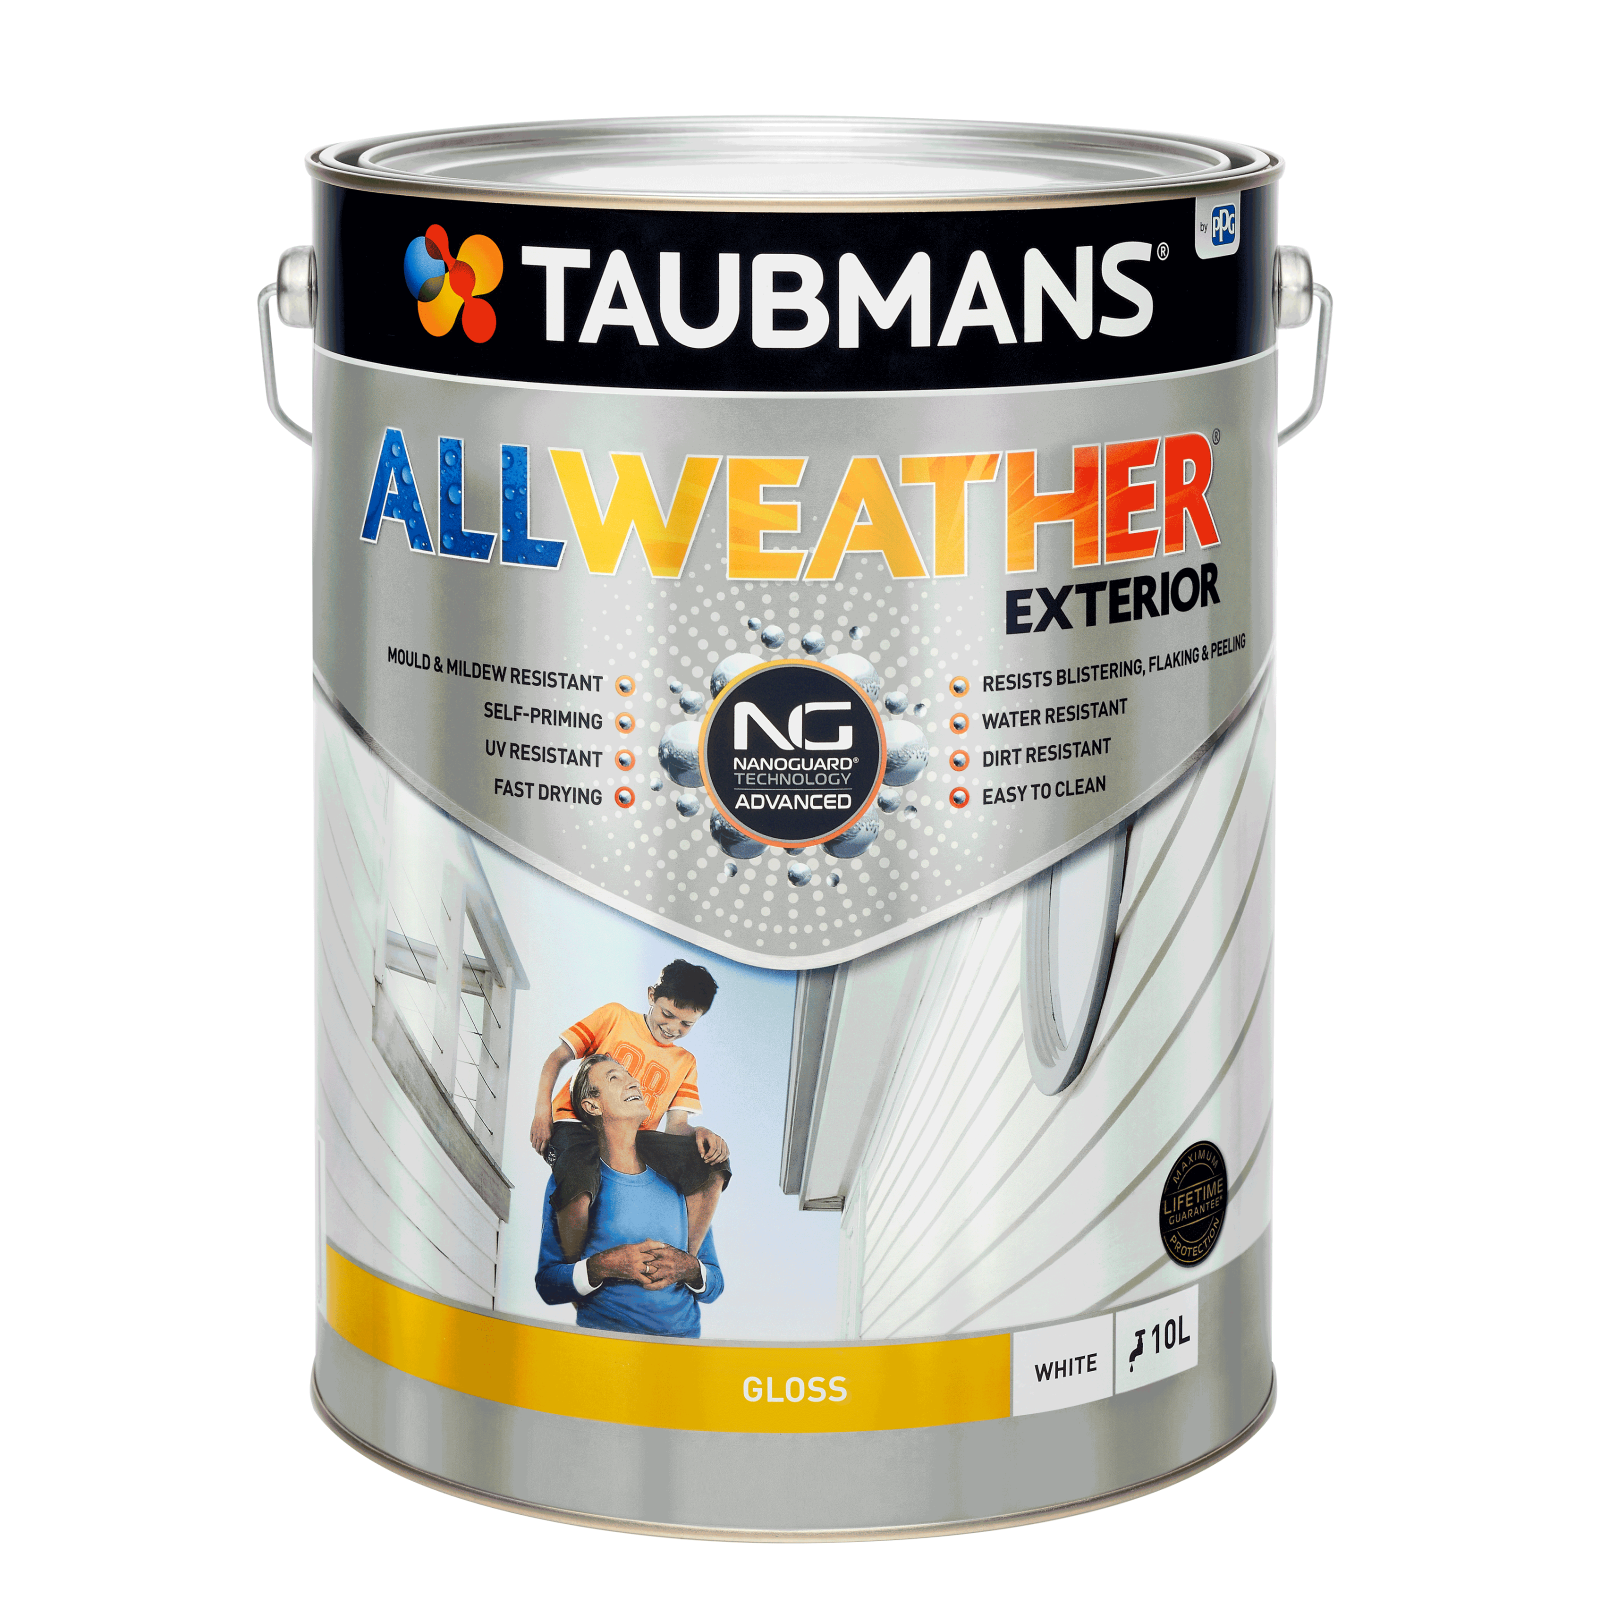 Taubmans 10L White Gloss All Weather Exterior Paint